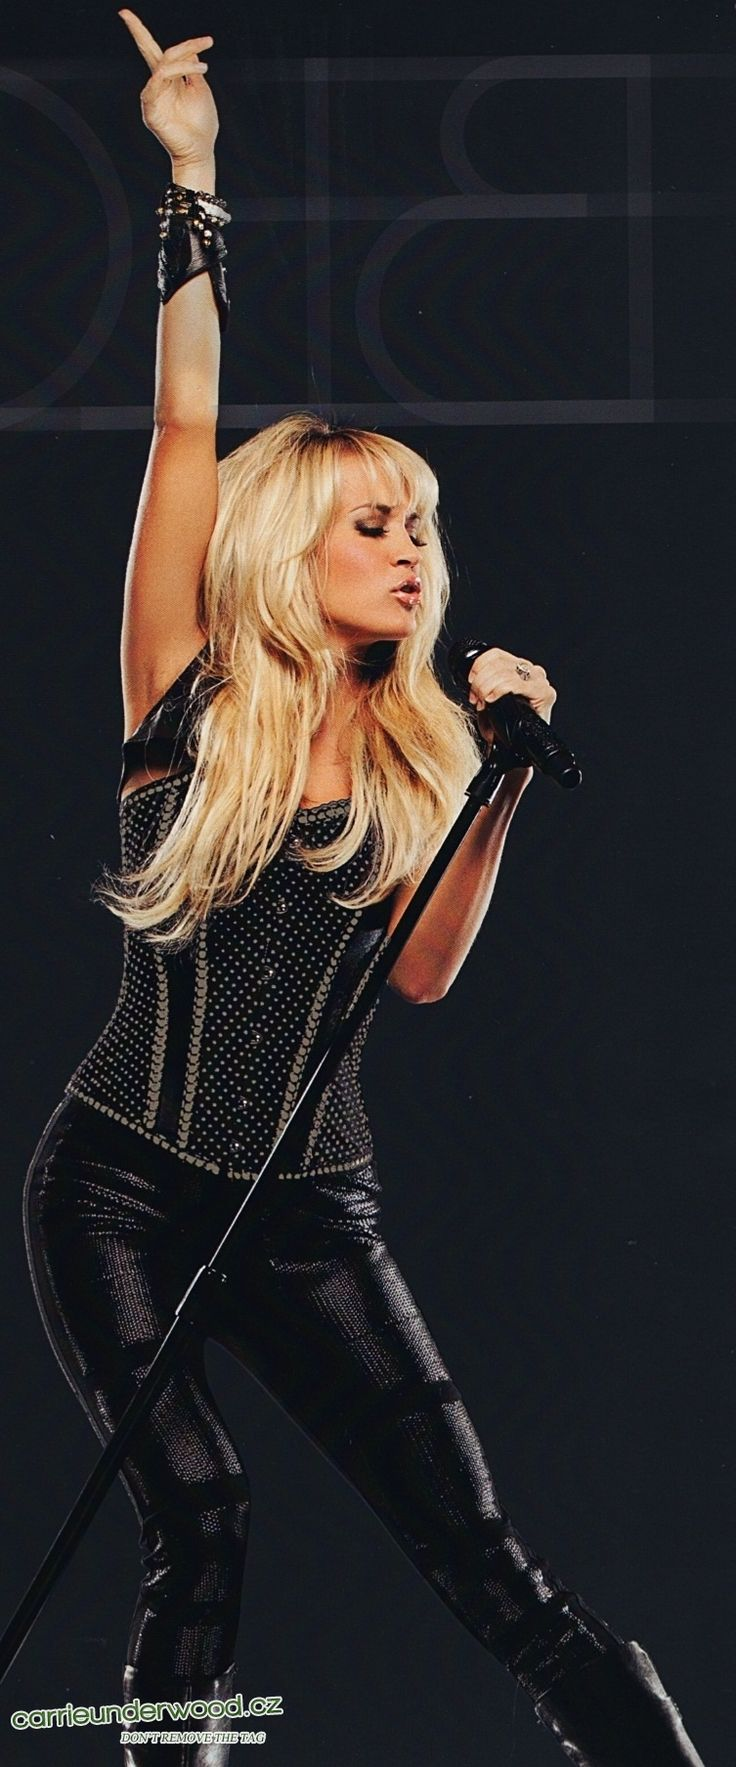 Carrie Underwood is gorgeous!